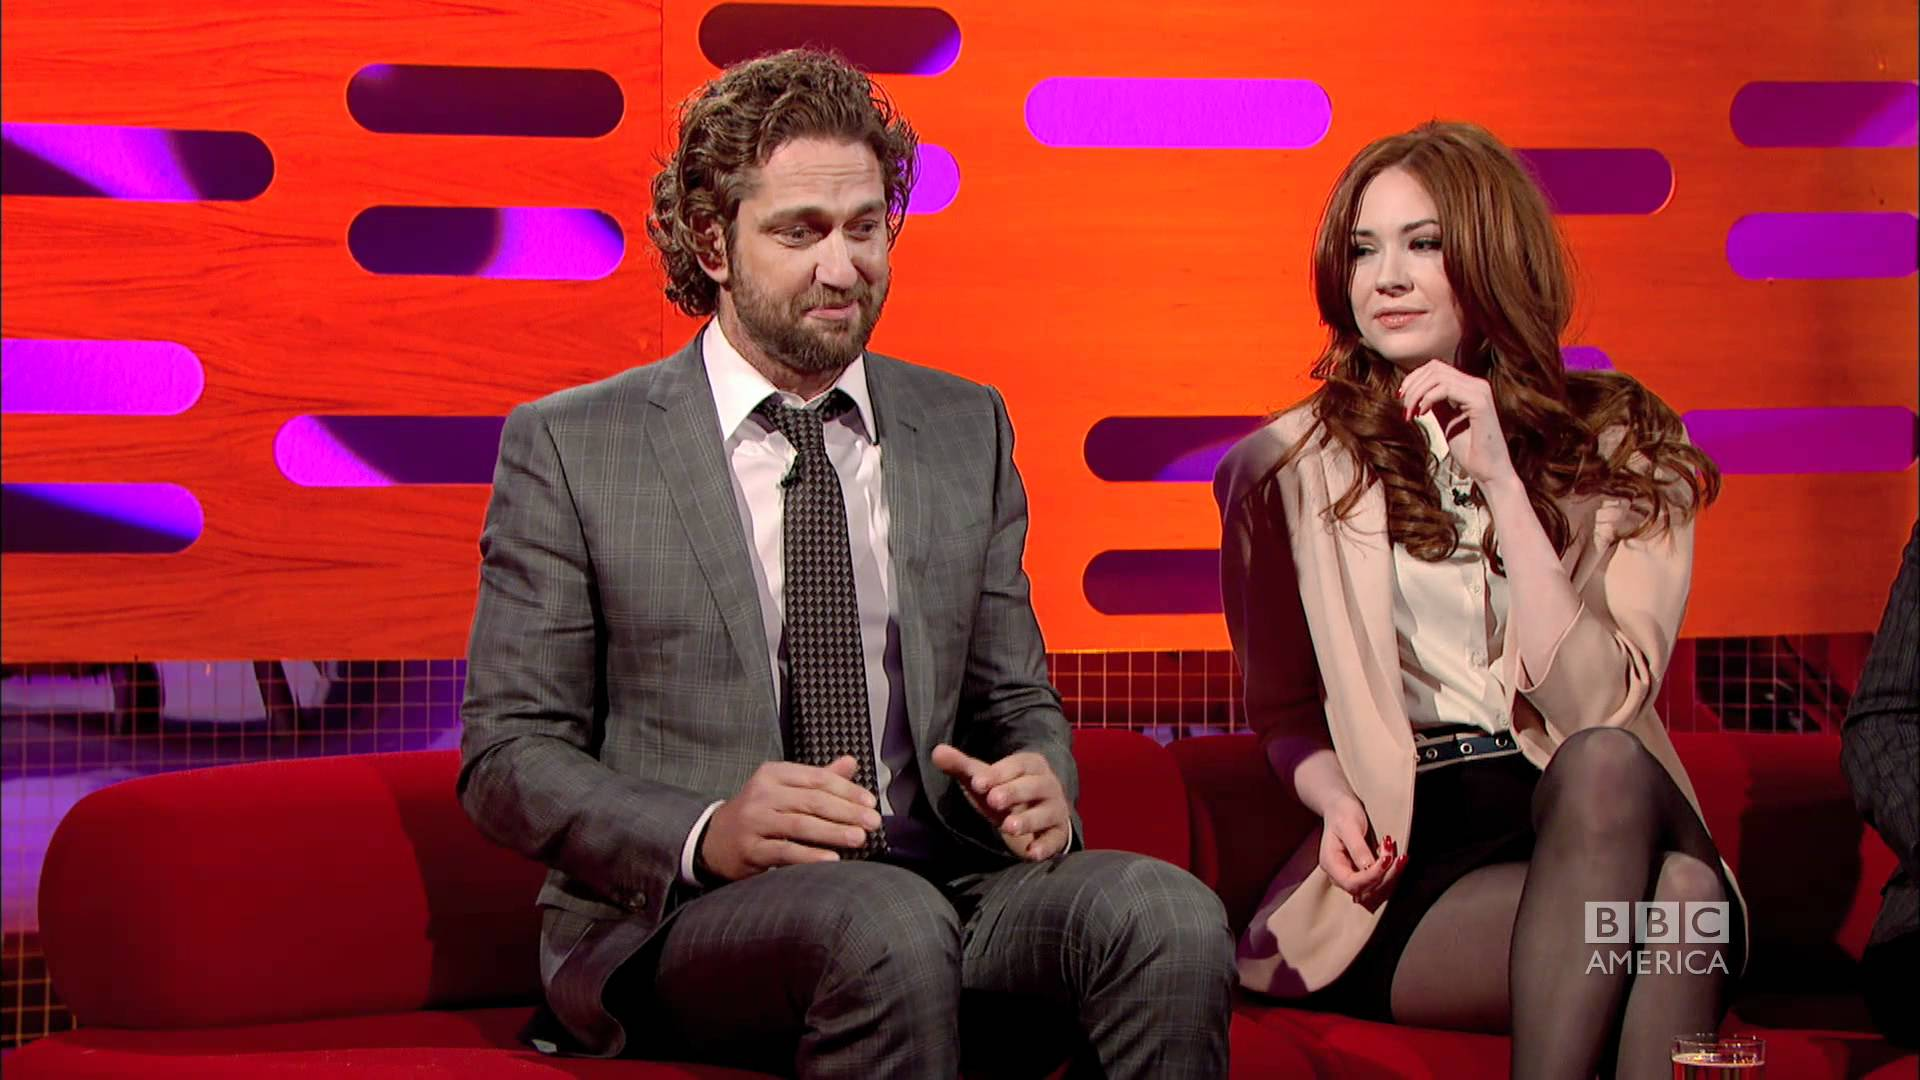 Gerard Butler Shares His Hilarious Kilt Wardrobe Malfunction! OMG This Is FUNNY!